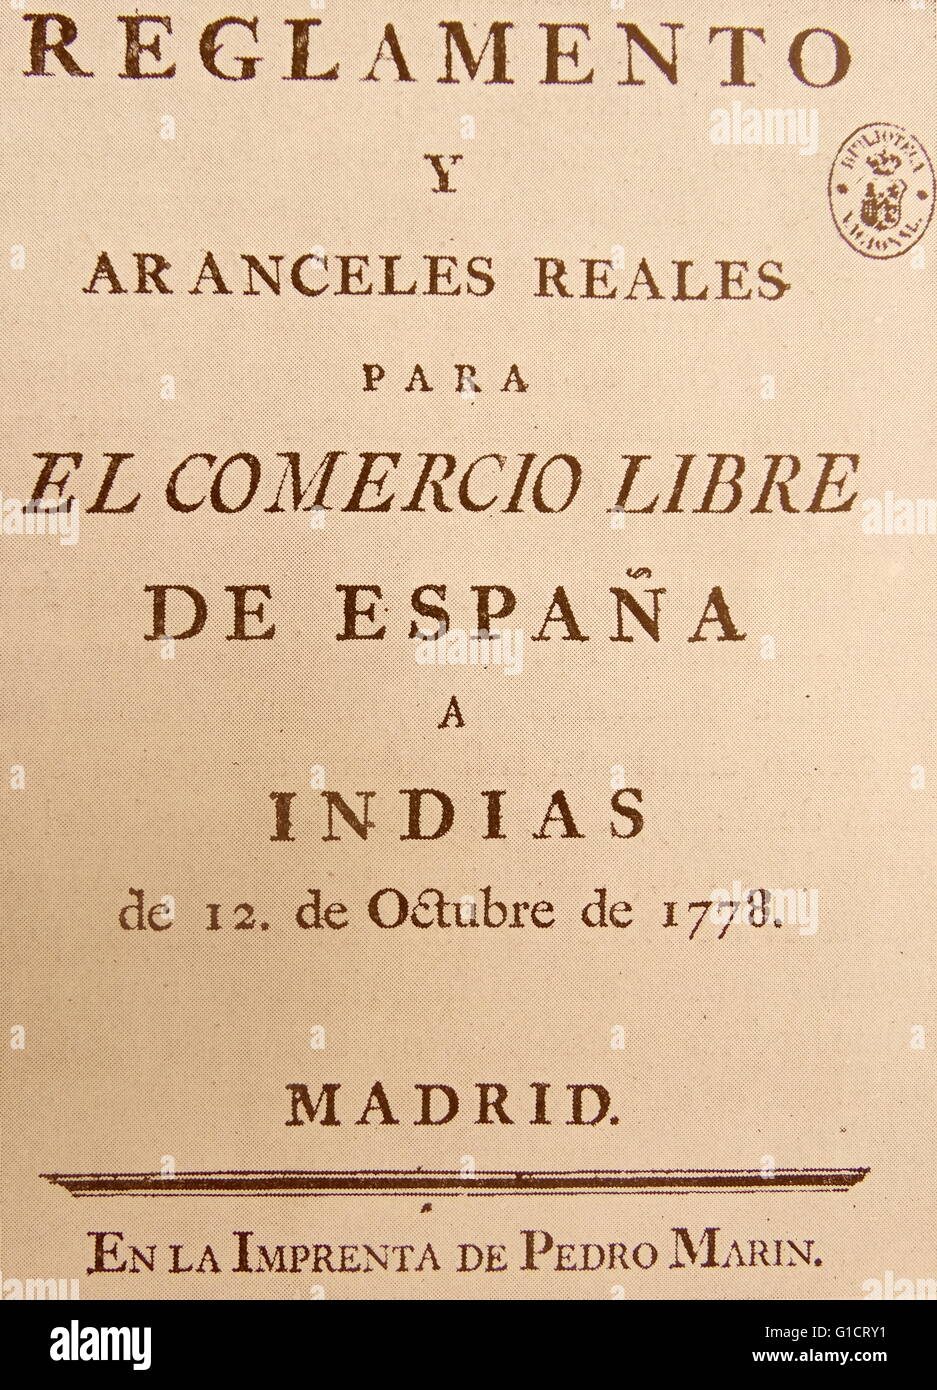 Home reals Regulations and tariffs, the application of which was very convenient for the economic life of Spain - Stock Image